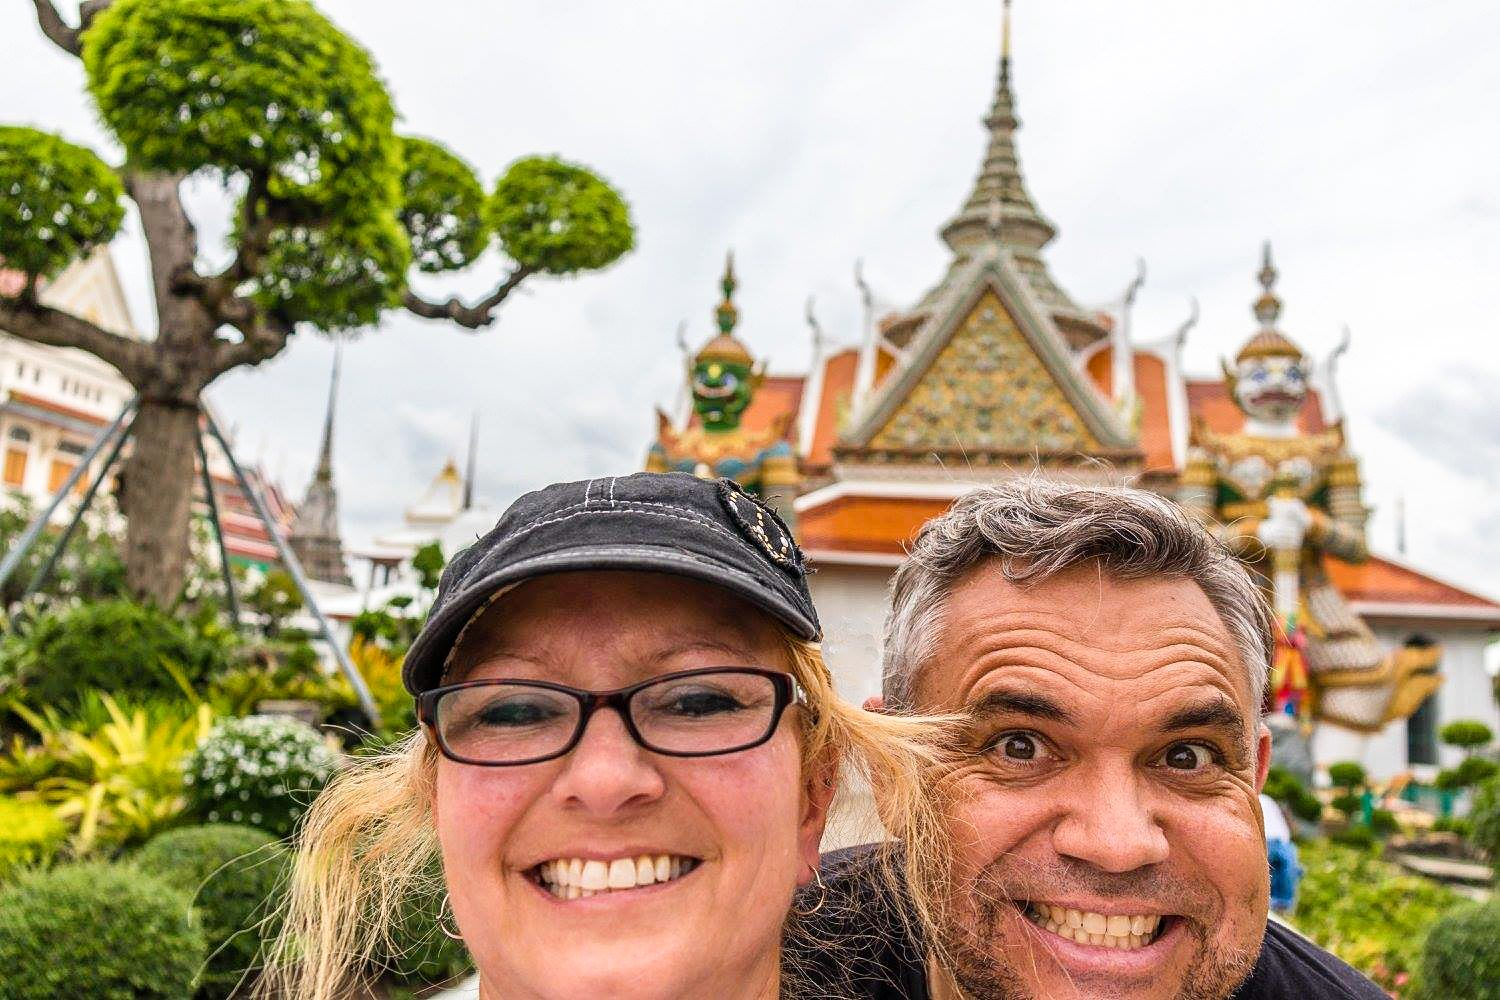 Sheila with her husband, Evo Terra, in Thailand, where they now work.